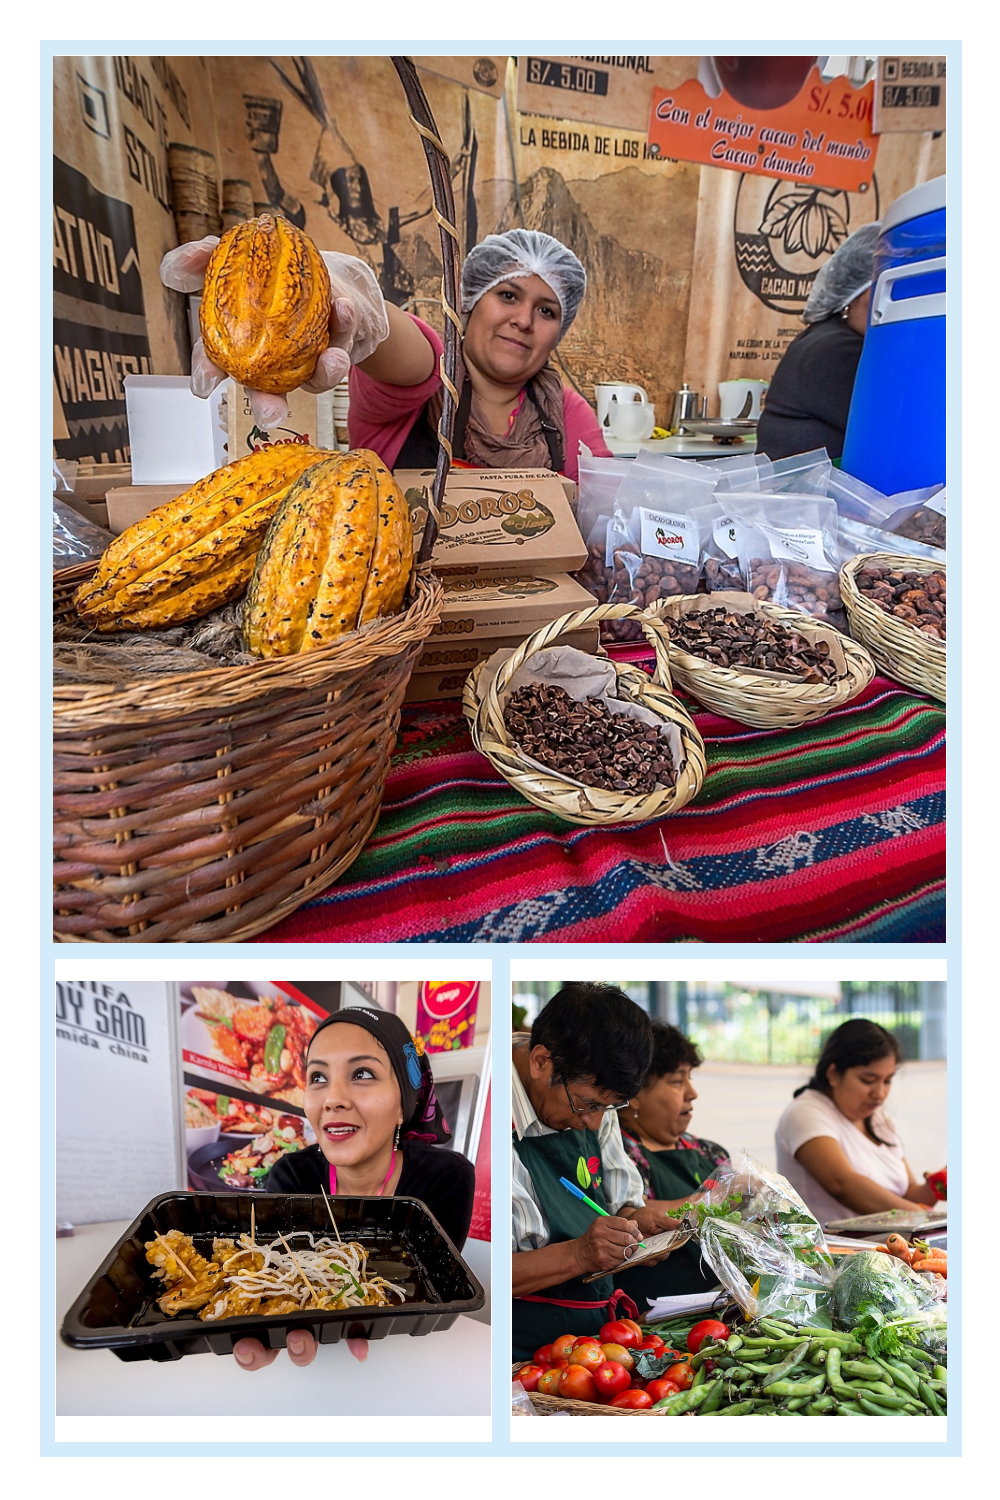 Peru Lima Cultural Food Tour By Vebo - Enjoy the rich culture of Peru with this Peru Lima Cultural Food Tour by VEBO. This tour prvides couples with an introduction to Lima and Peru through its world-class cuisine, friendly locals, and bustling markets.